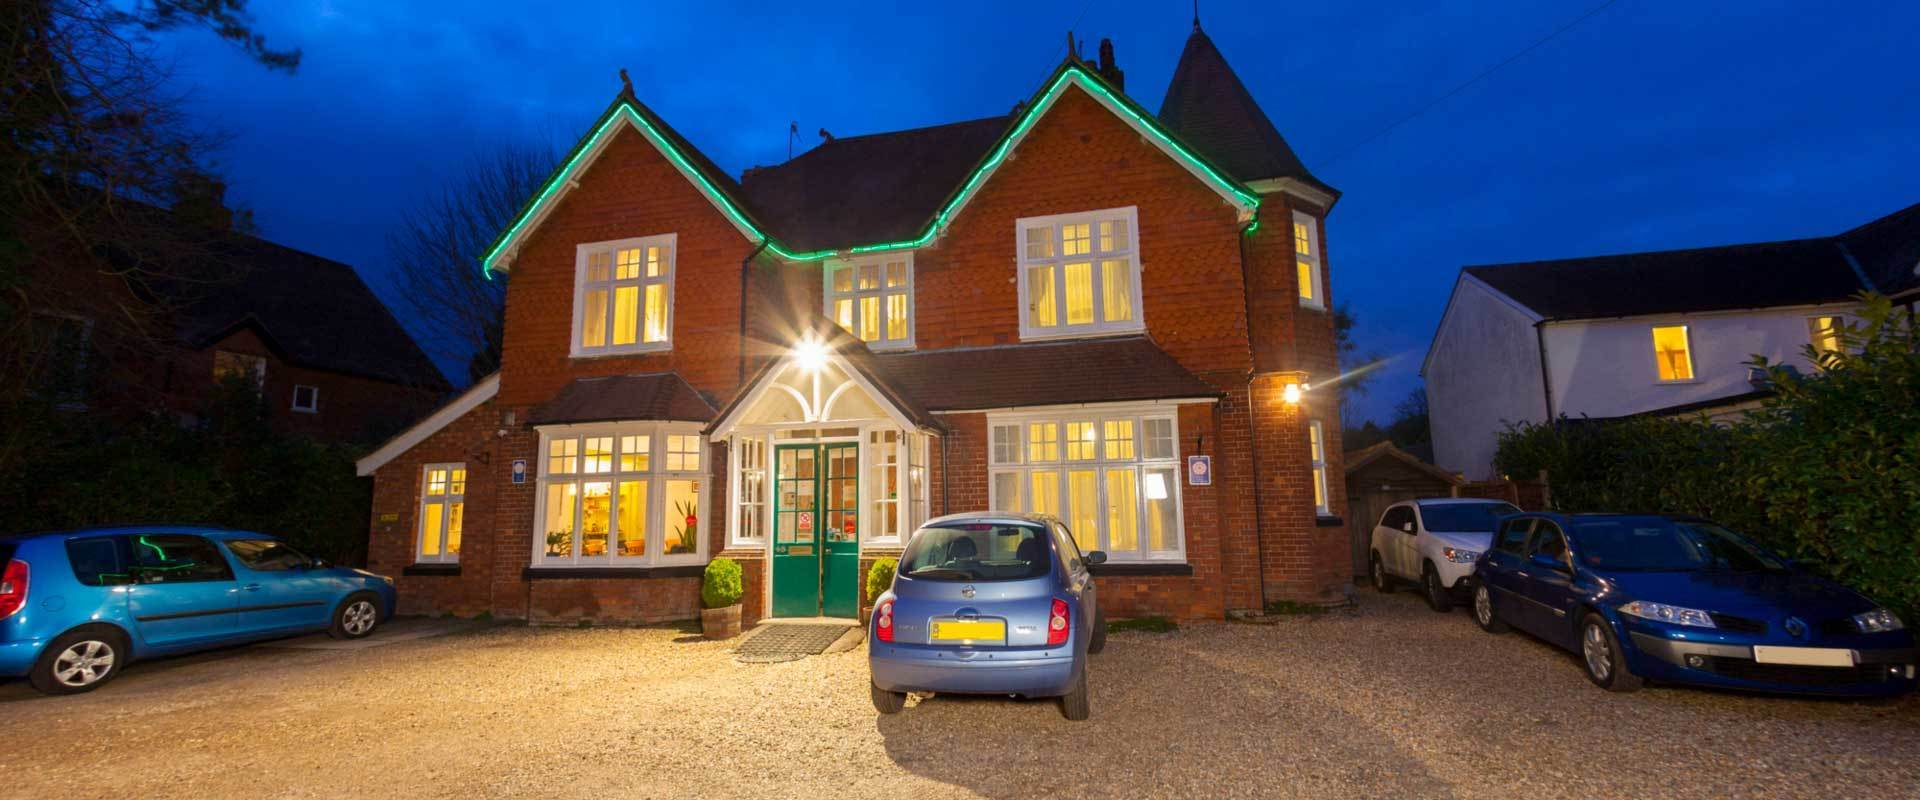 Bed and Breakfast Near Gatwick Airport